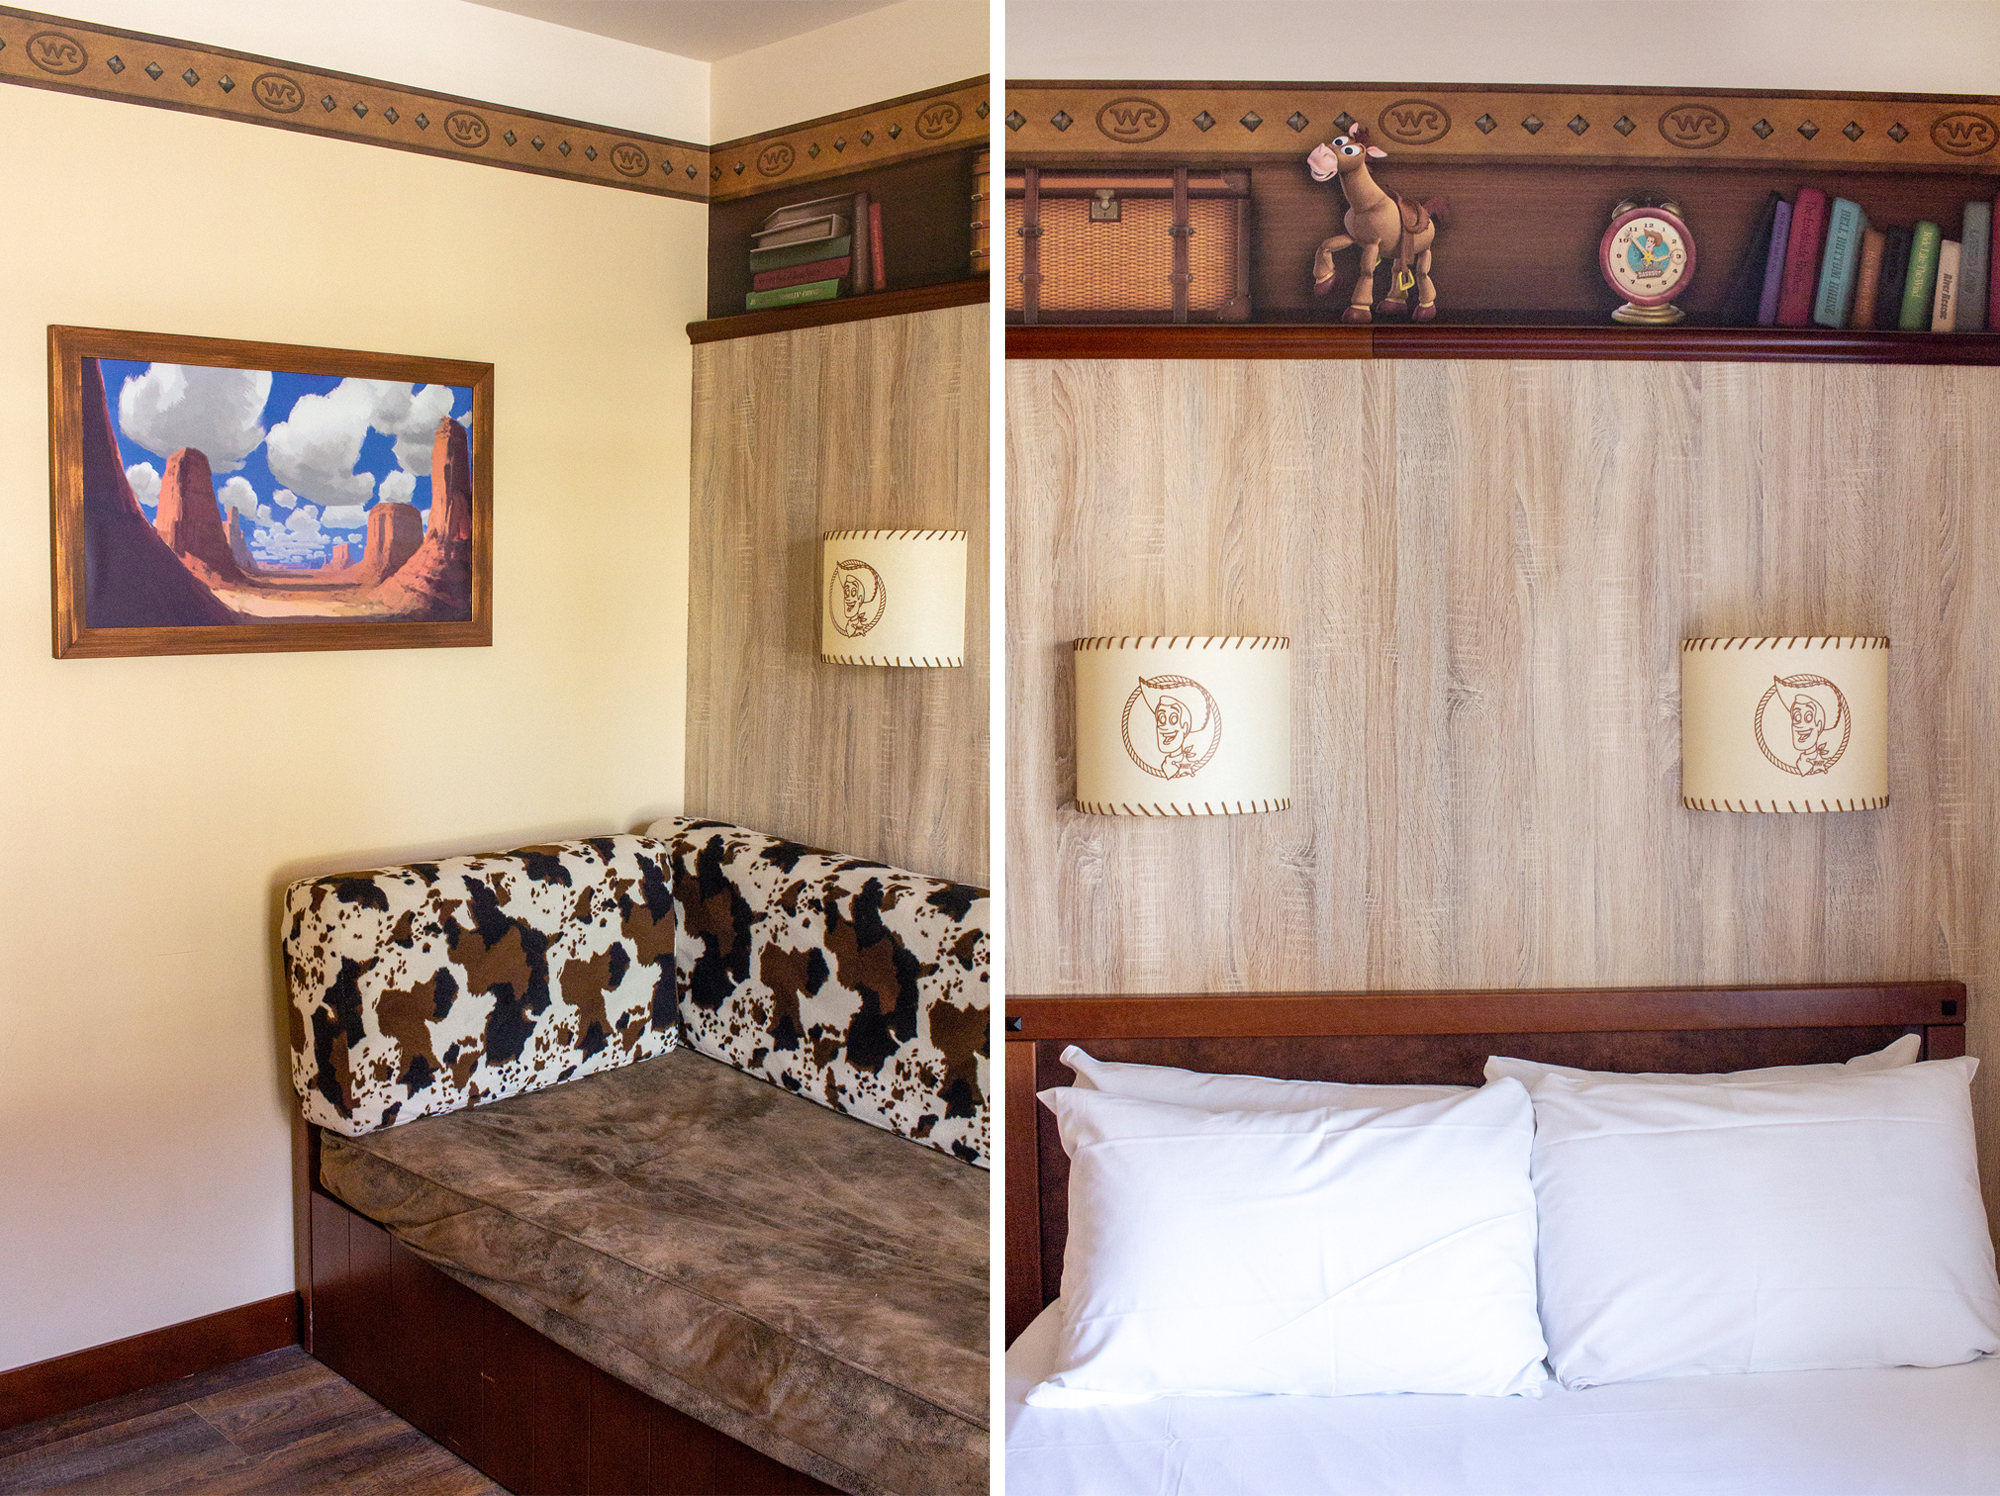 Hotel room with toy story decor and co print furnishings. | Staying at Hotel Cheyenne in Disneyland Paris